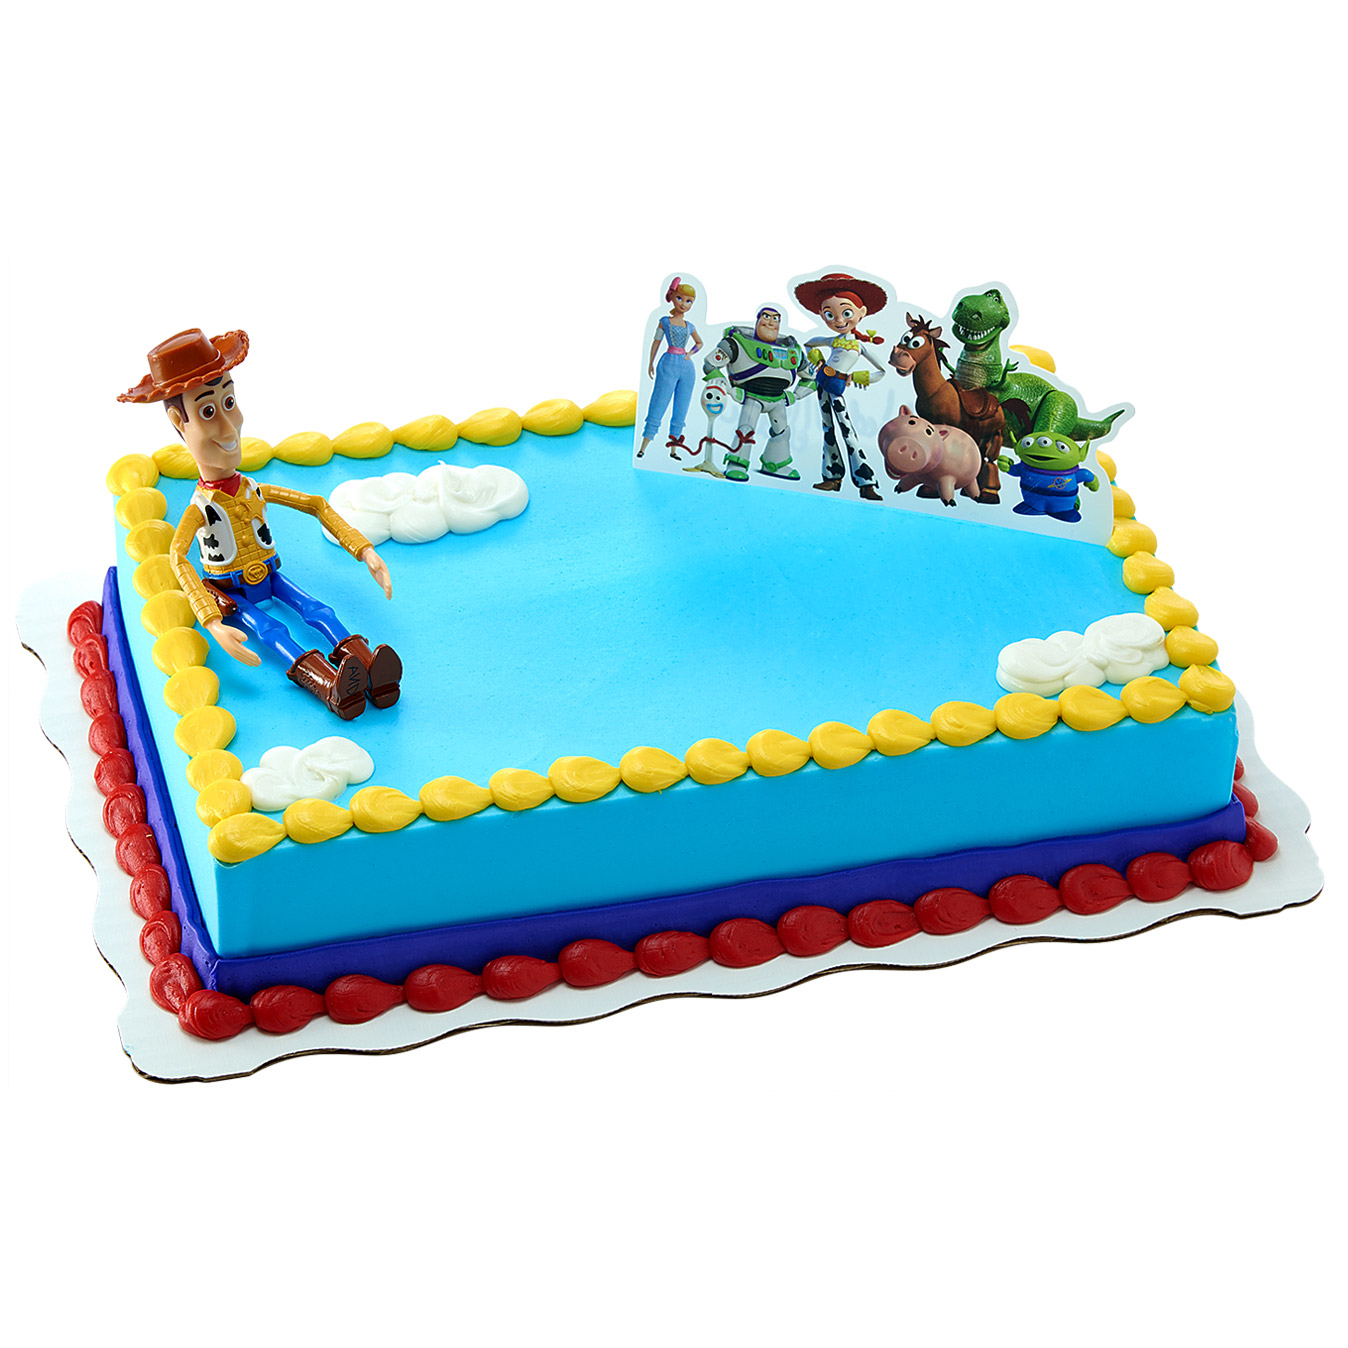 Incredible Toy Story 4 Kit Cake Walmart Com Walmart Com Personalised Birthday Cards Rectzonderlifede